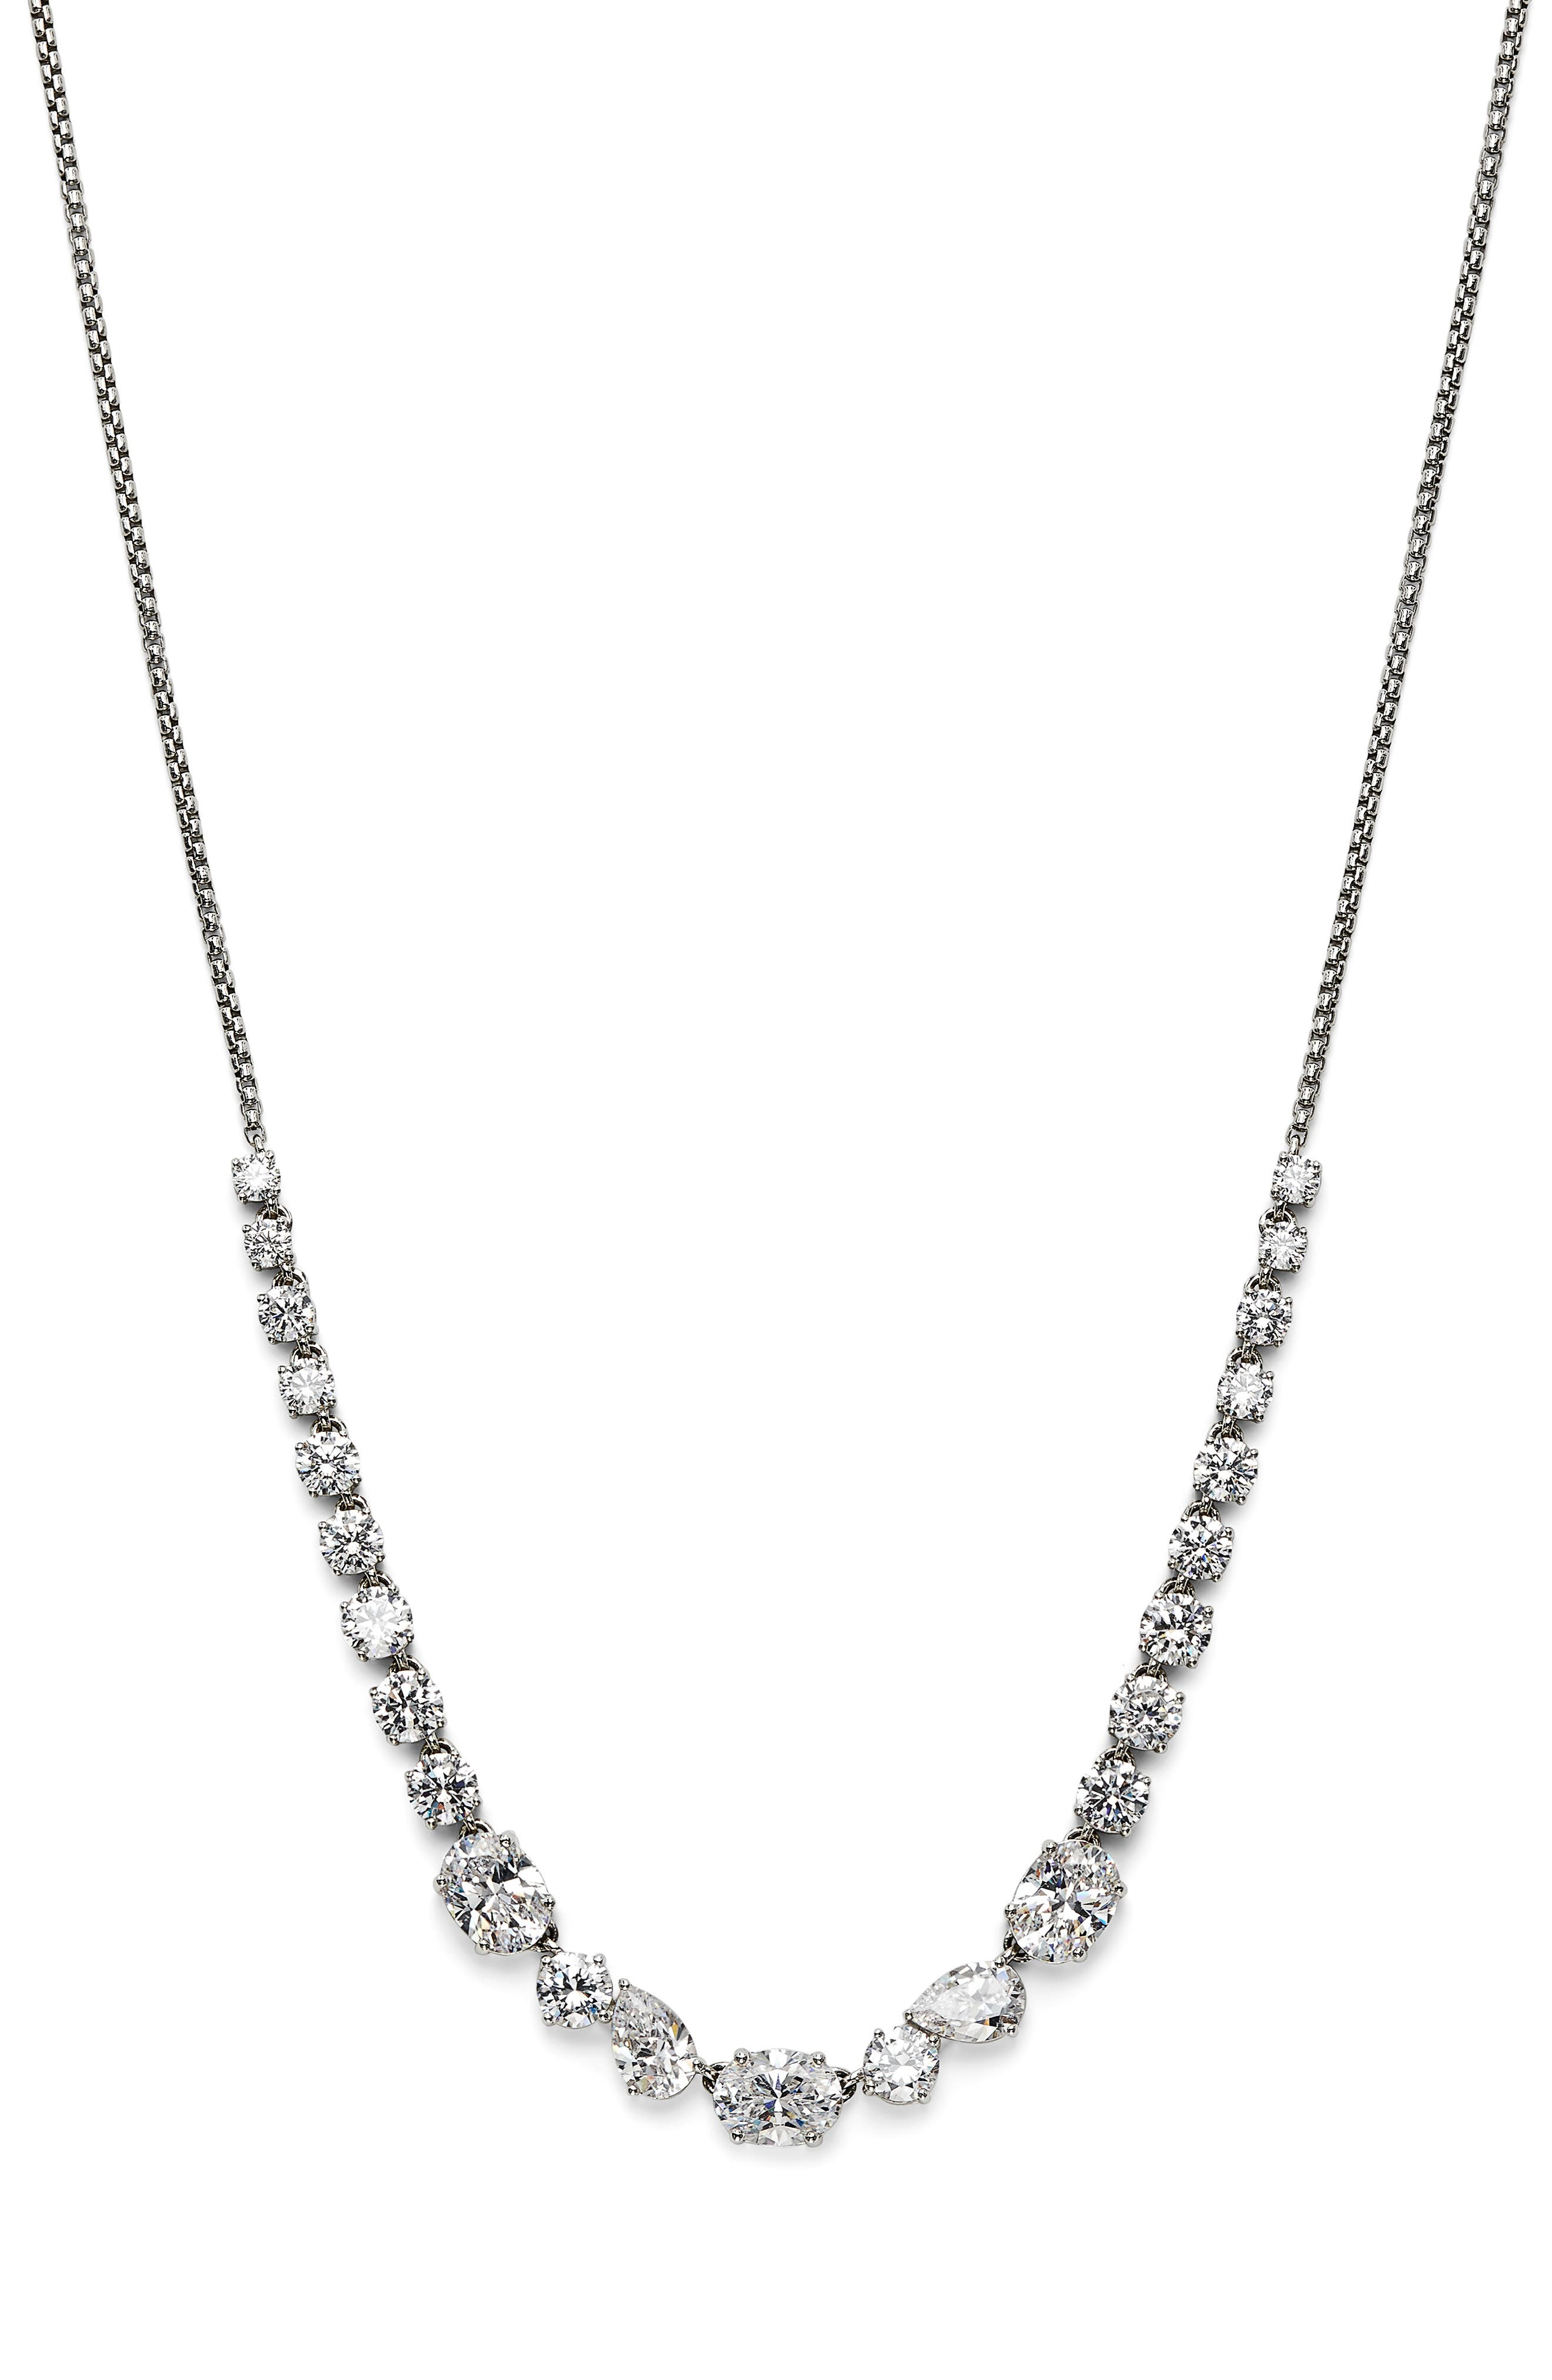 Round and teardrop-shaped stones add eye-catching sparkle and shine to this hand-polished chain-link necklace. Style Name: Nadri Chloe Cubic Zirconia Necklace. Style Number: 6106209. Available in stores.